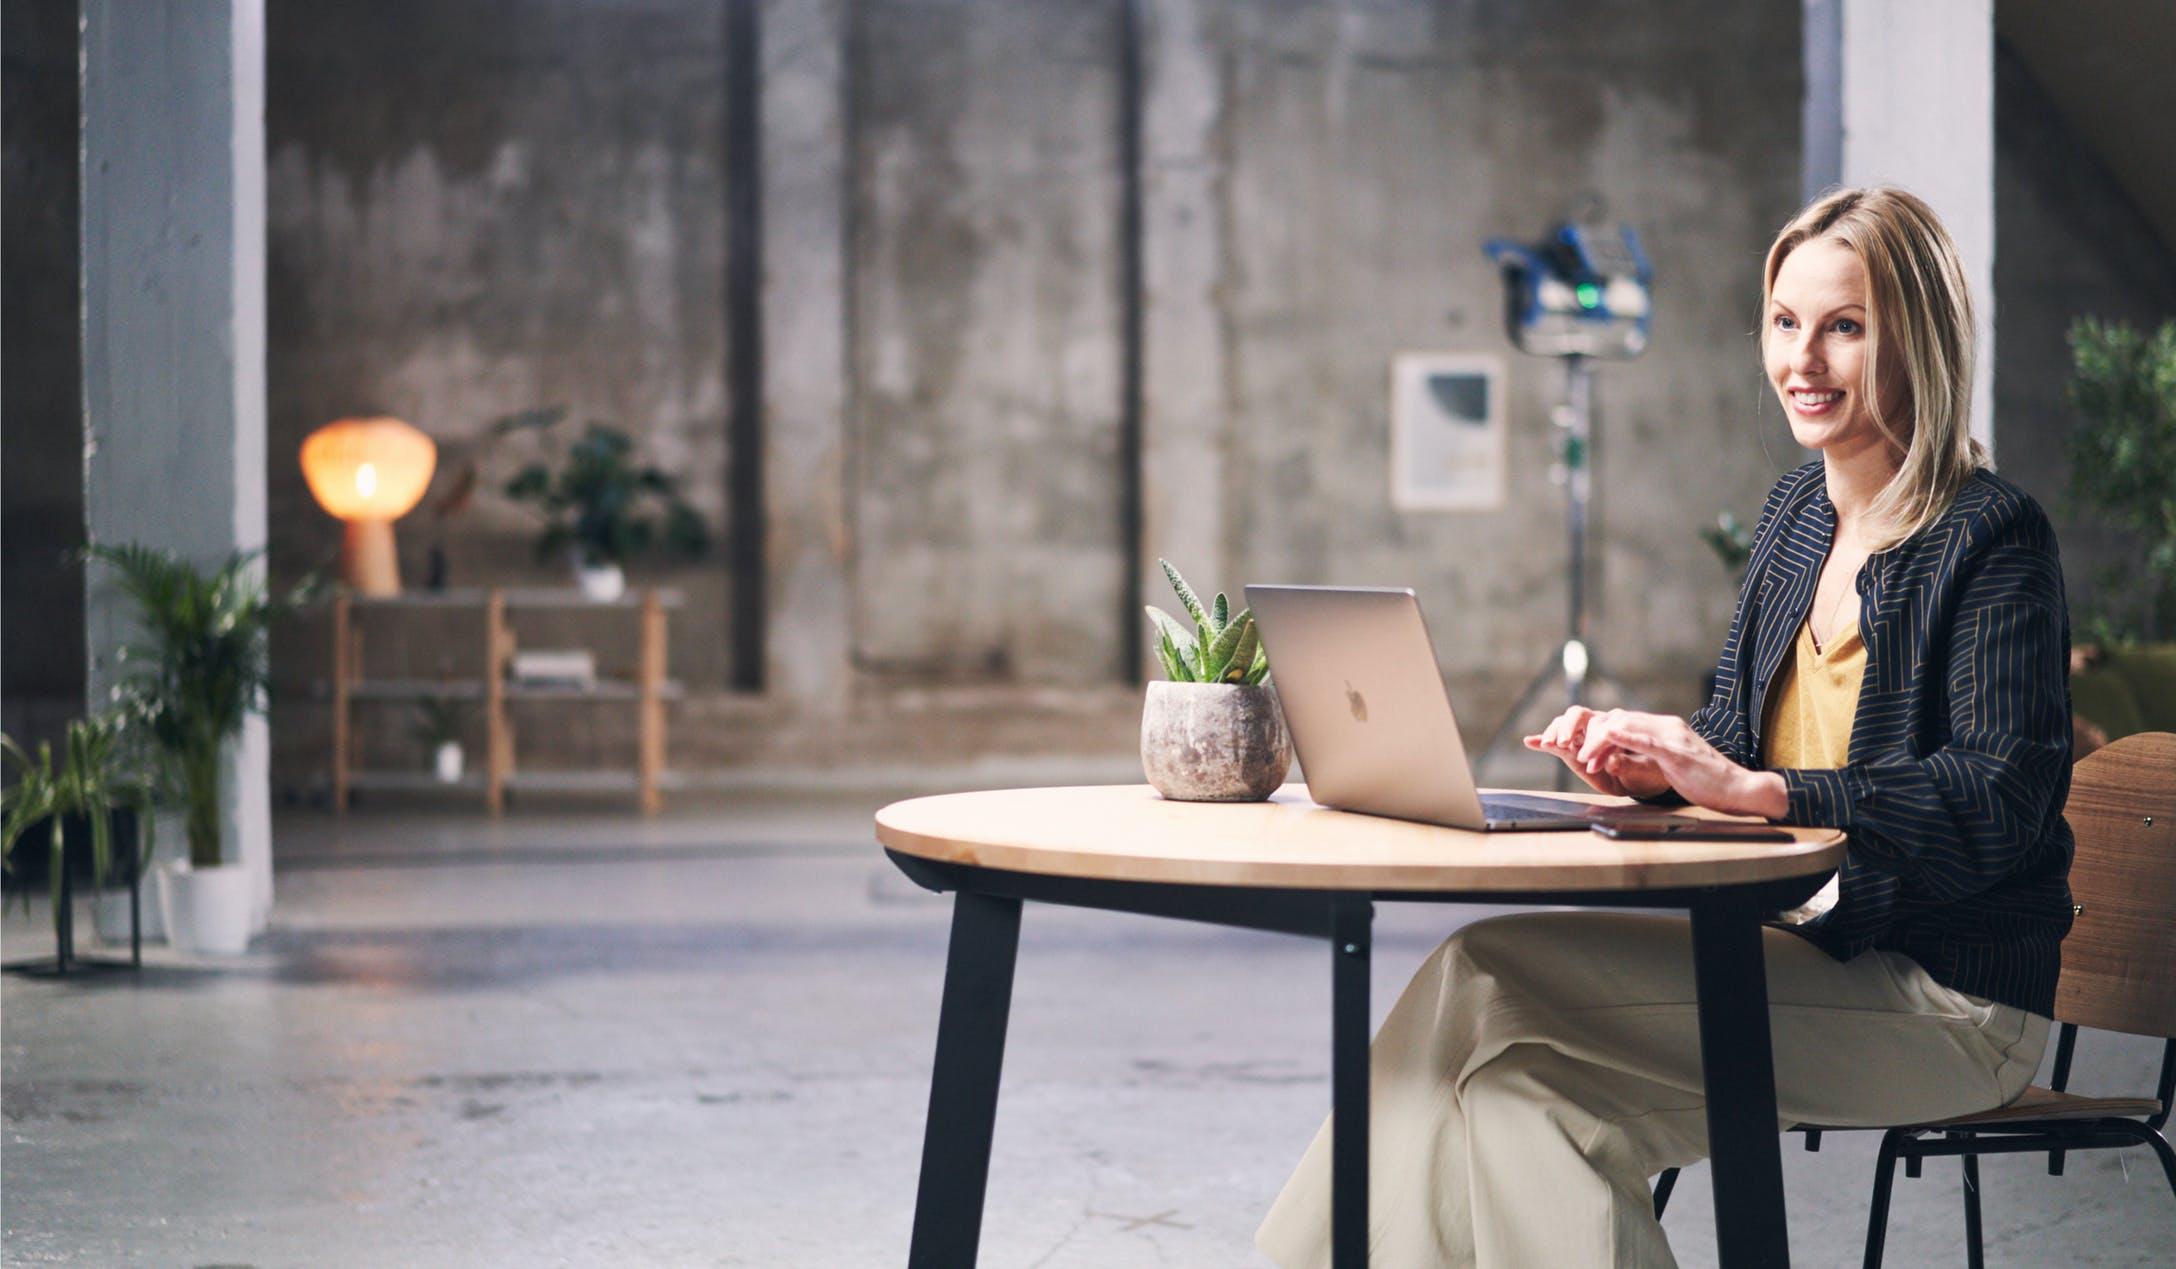 Woman sitting at a desk with a laptop computer